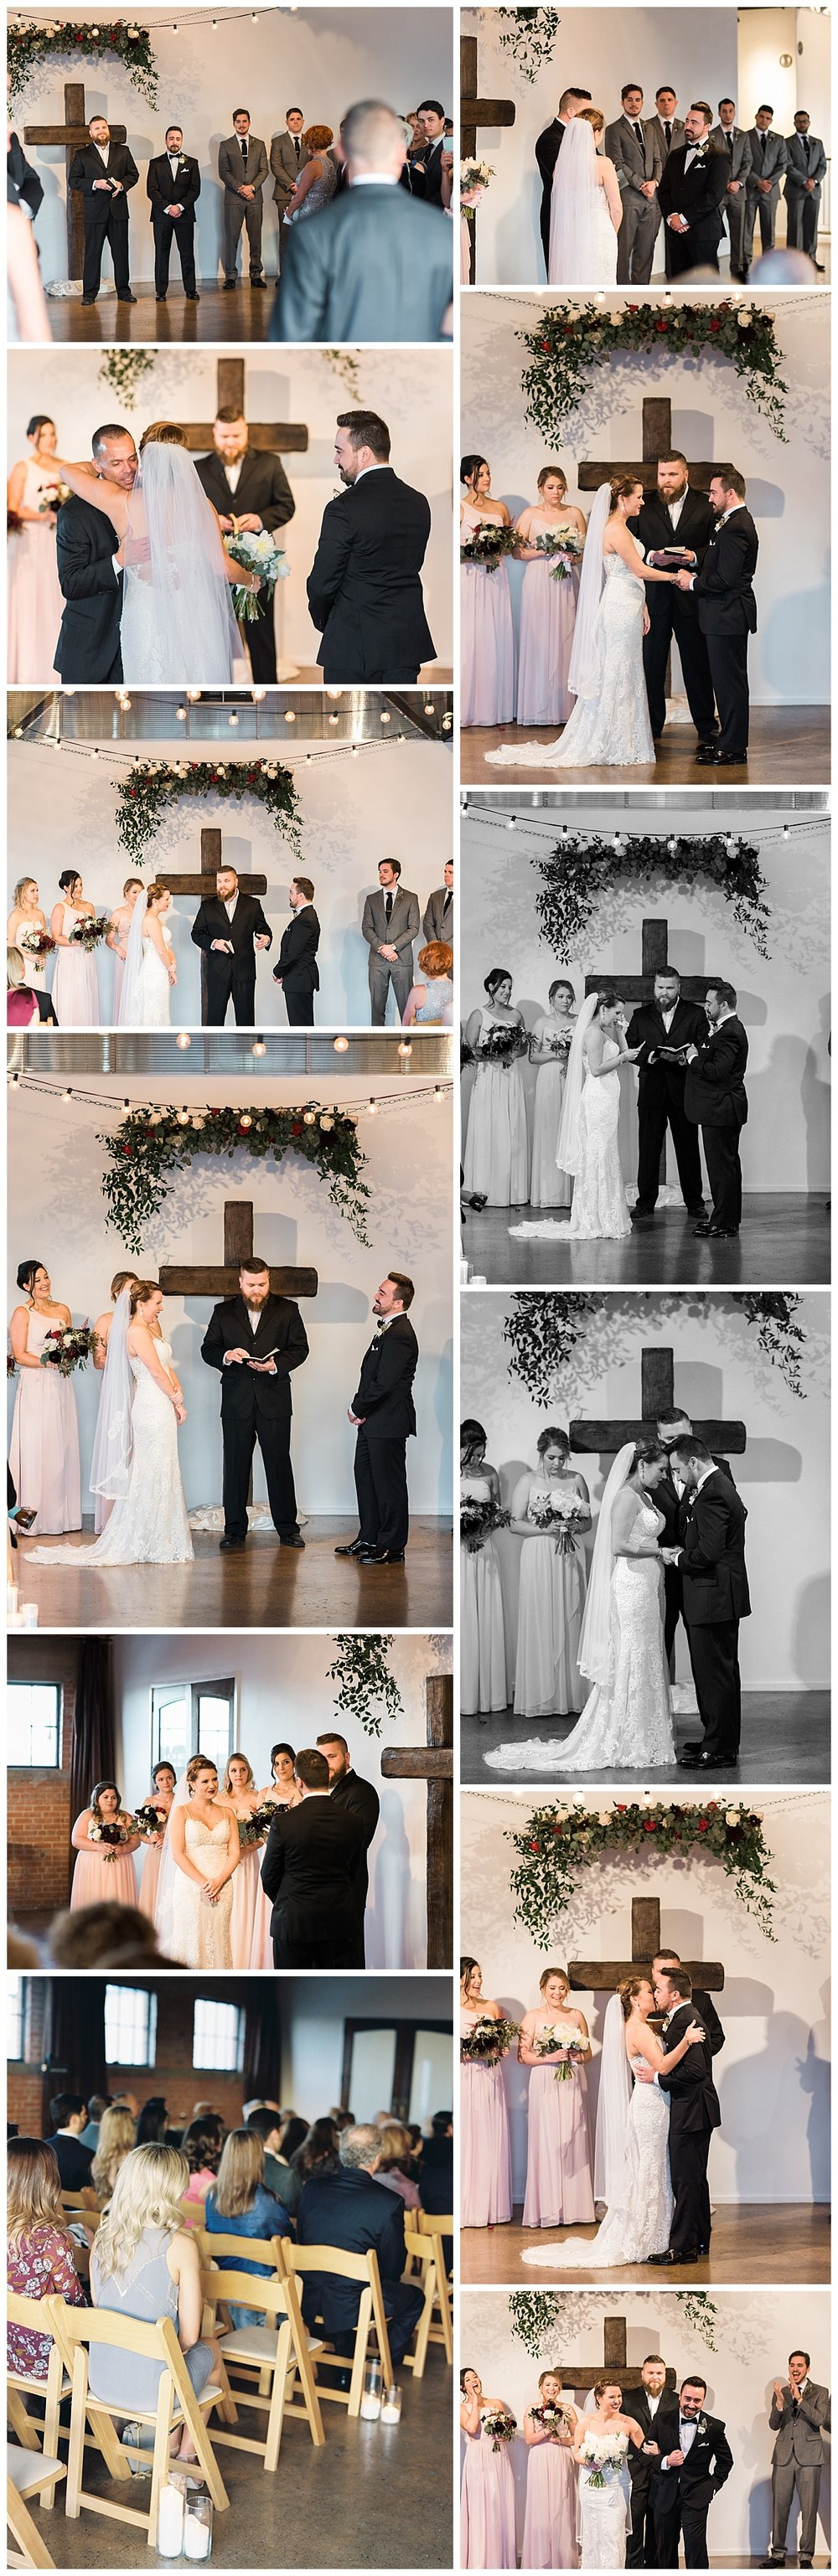 hickory-stree-annex-wedding-ar-photography-nicole-nolan-11.jpg